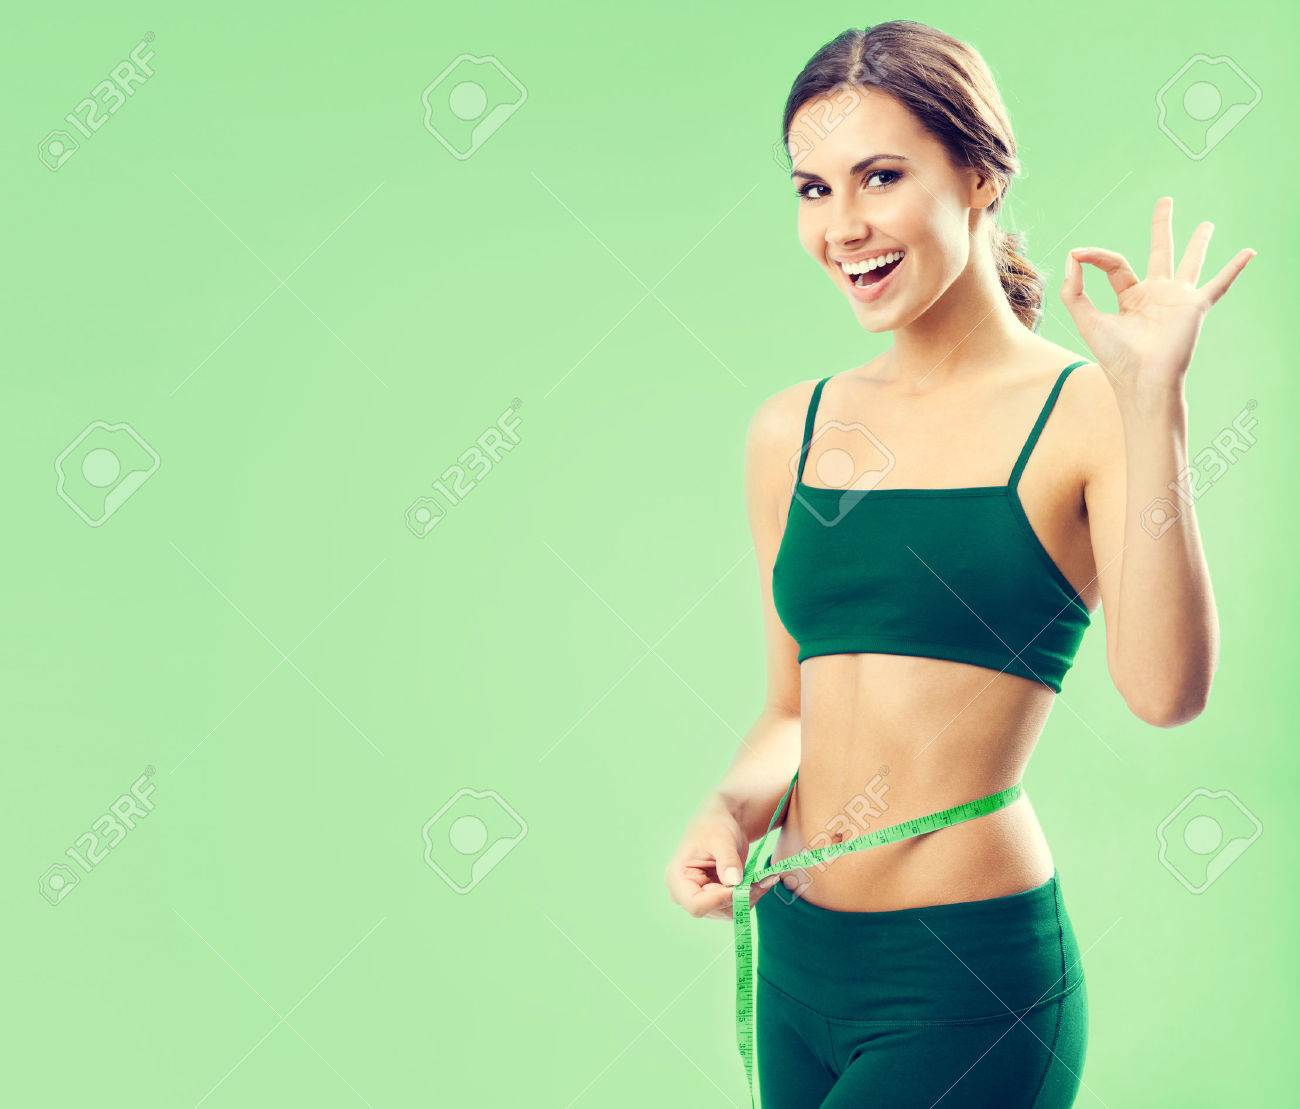 Portrait of smiling young lovely woman in fitness wear with tape, showing okay gesture, over green background, with blank copyspace area for text or slogan Banque d'images - 43738060